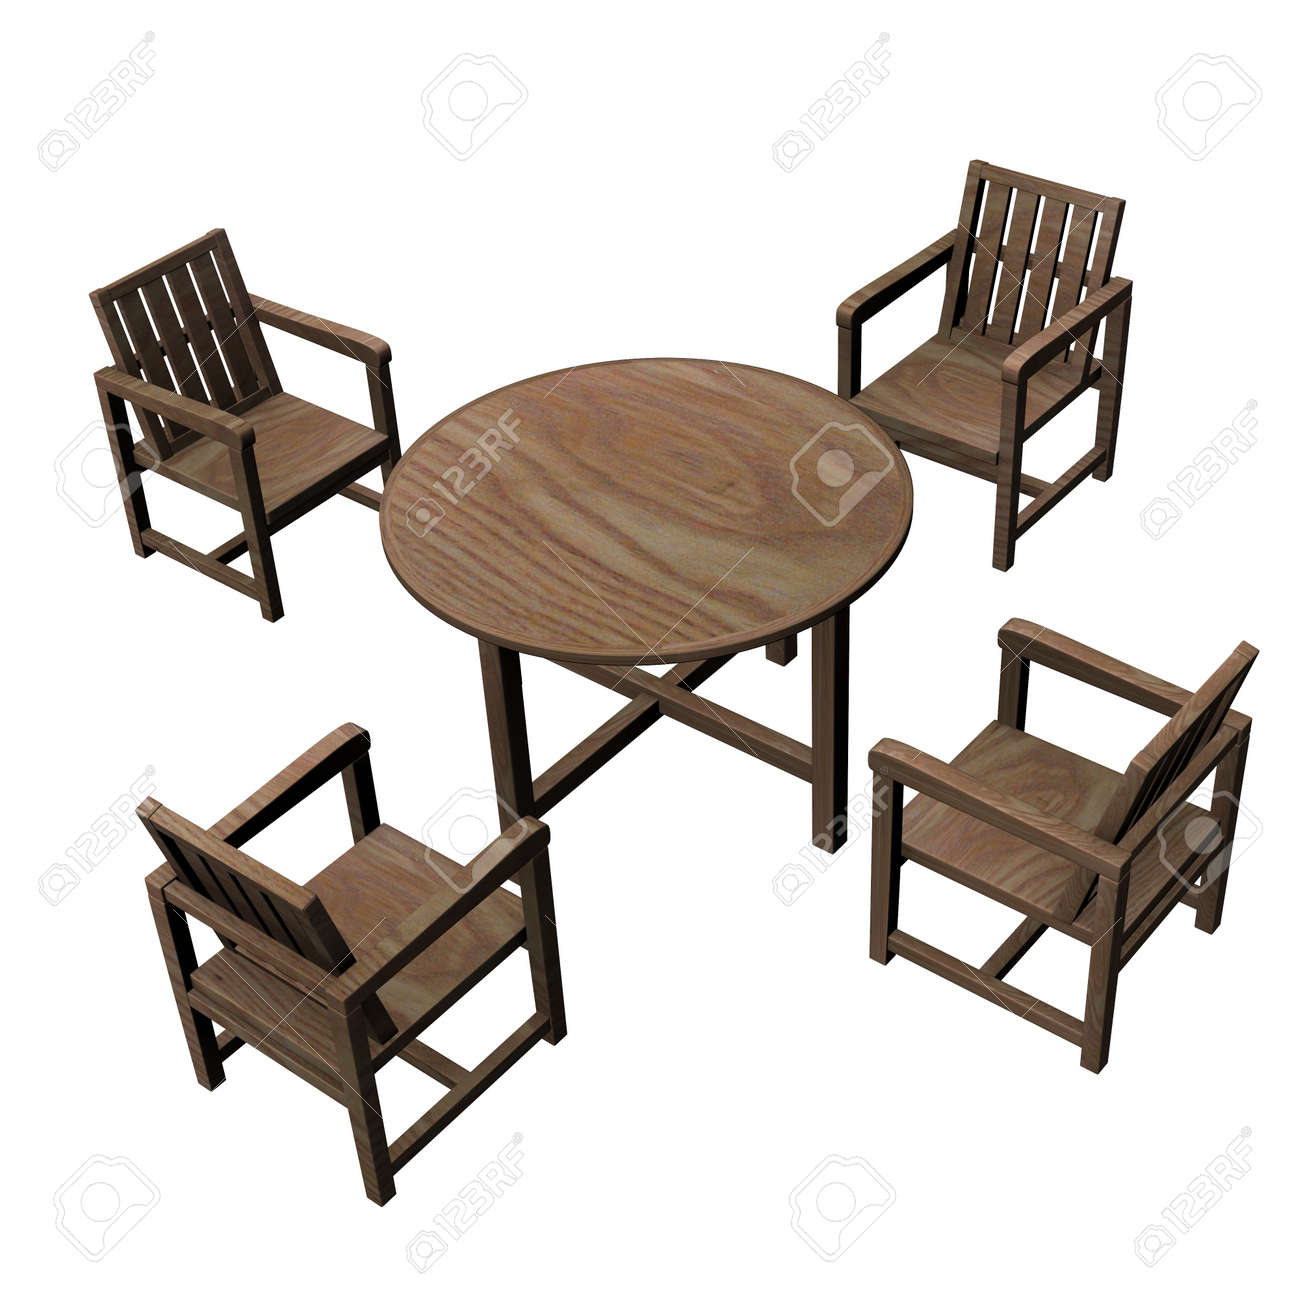 3d render of garden furniture stock photo 12906368 - Garden Furniture 3d